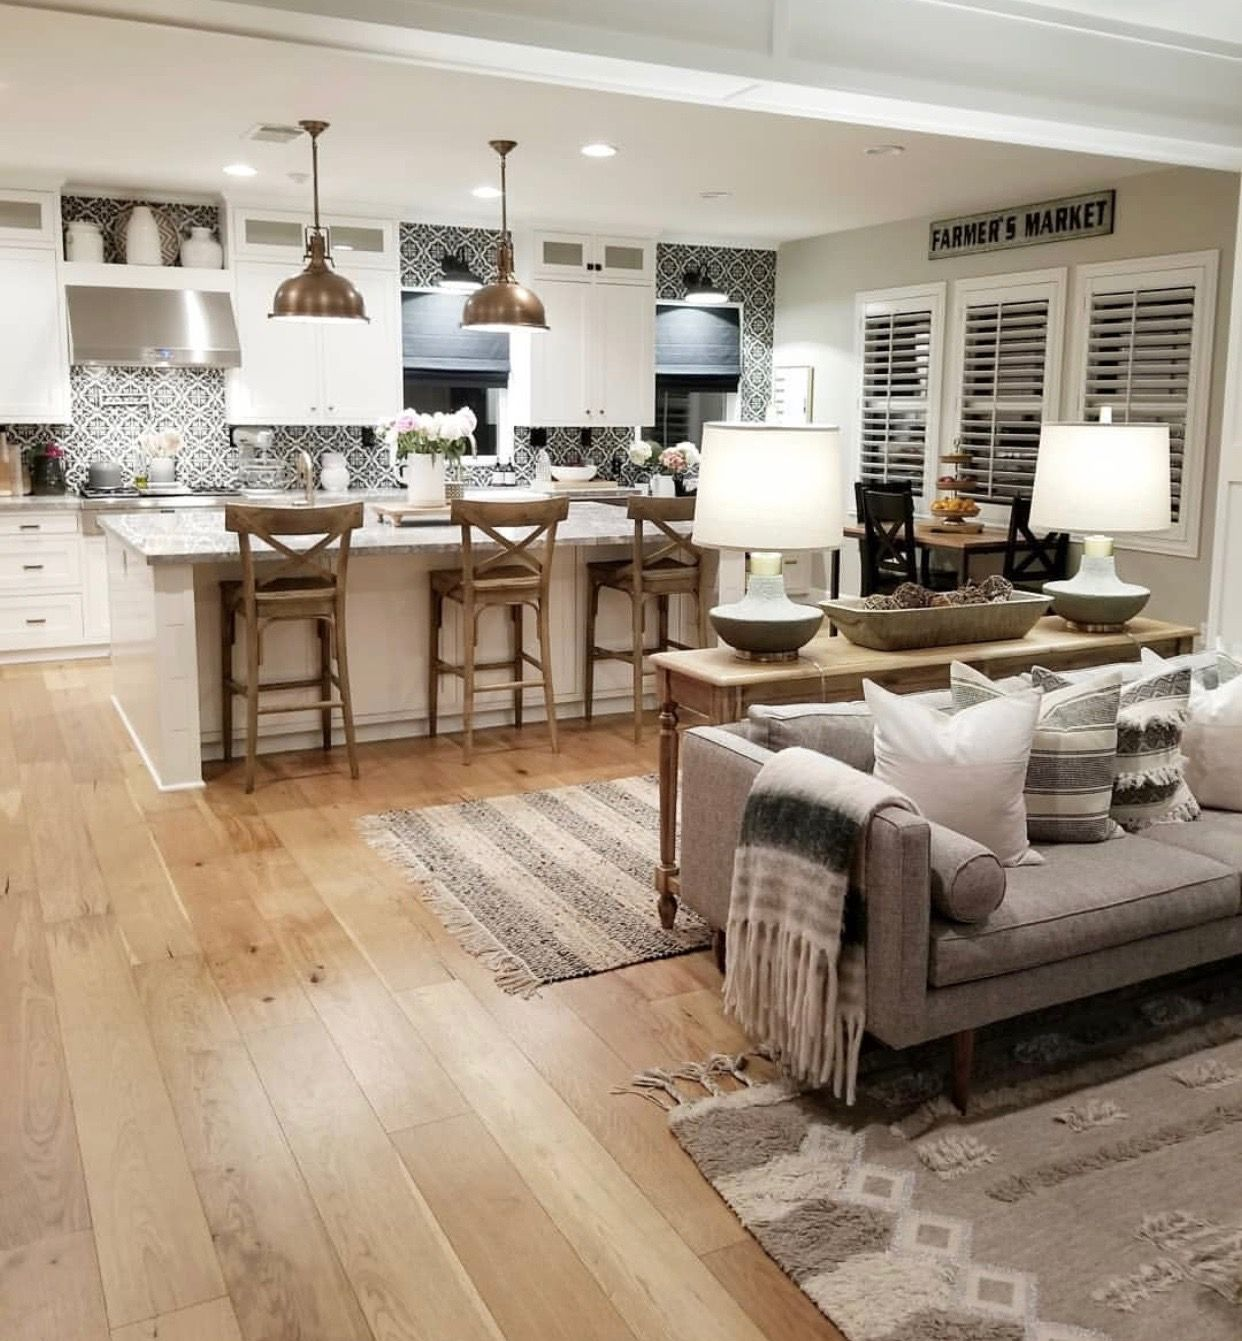 Pin By Shay Mallick On Home Design Open Concept Kitchen Living Room Open Kitchen And Living Room Living Room Kitchen